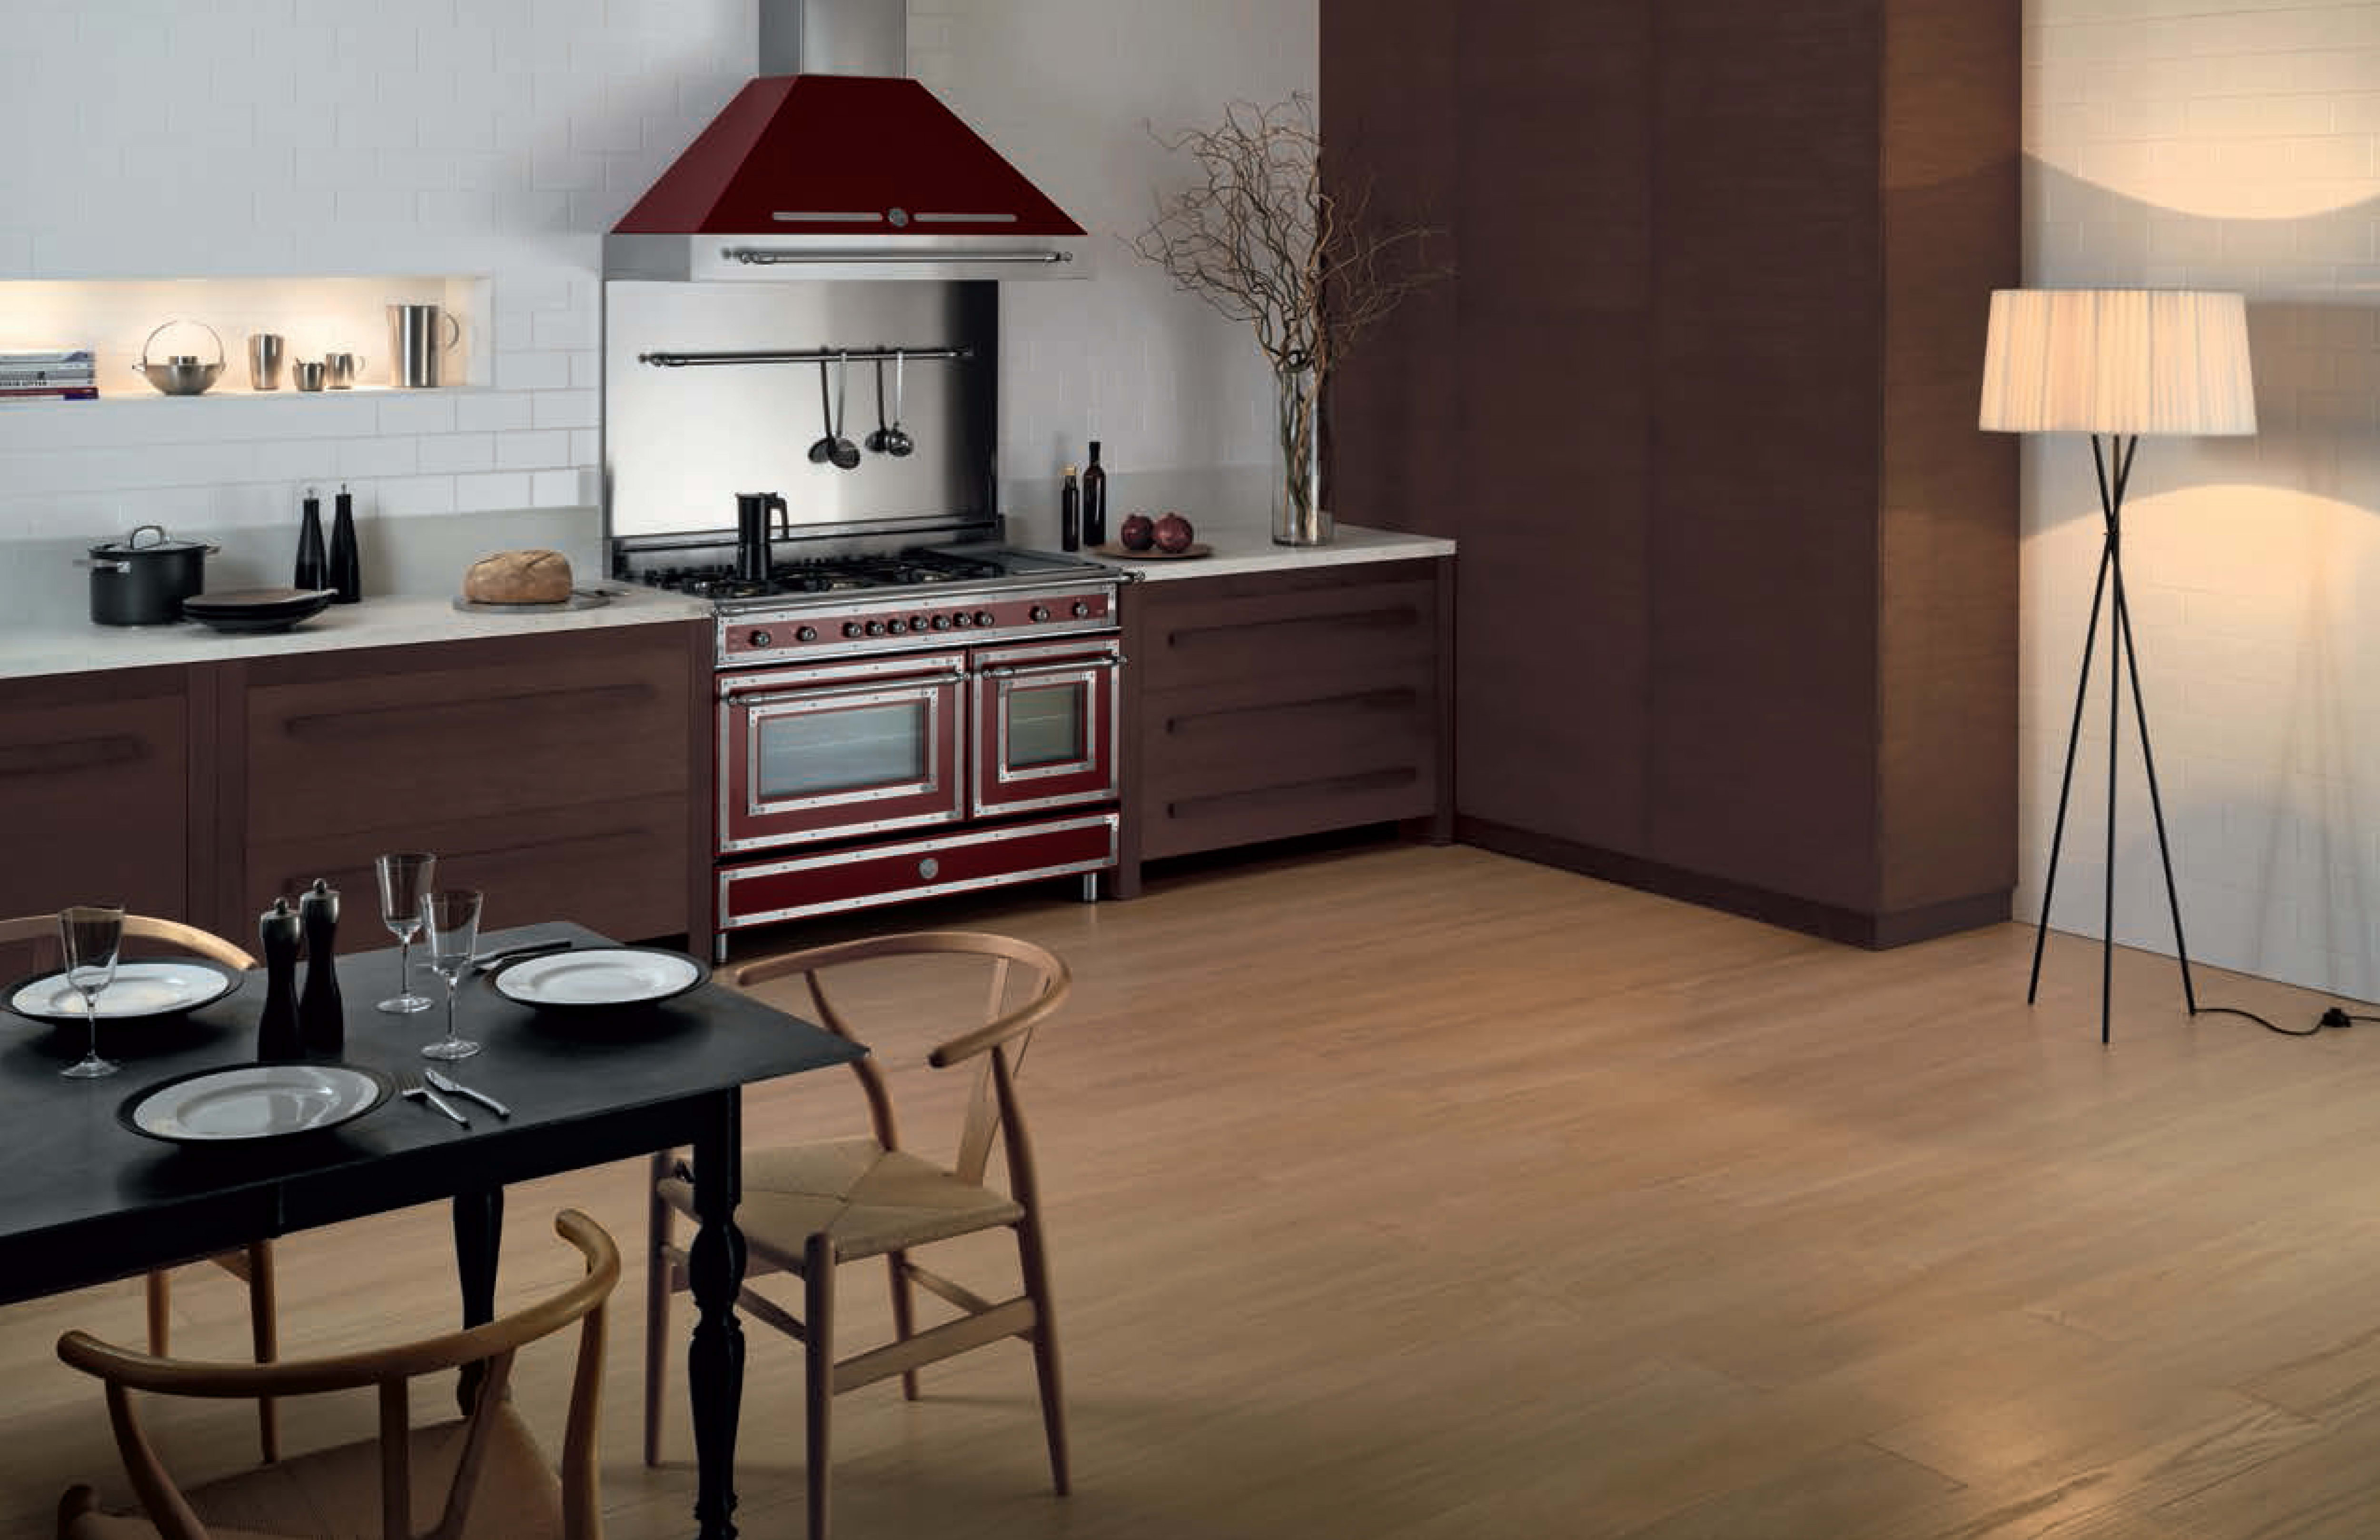 Bertazzoni's old-timey Heritage Series on display in this transitional kitchen.